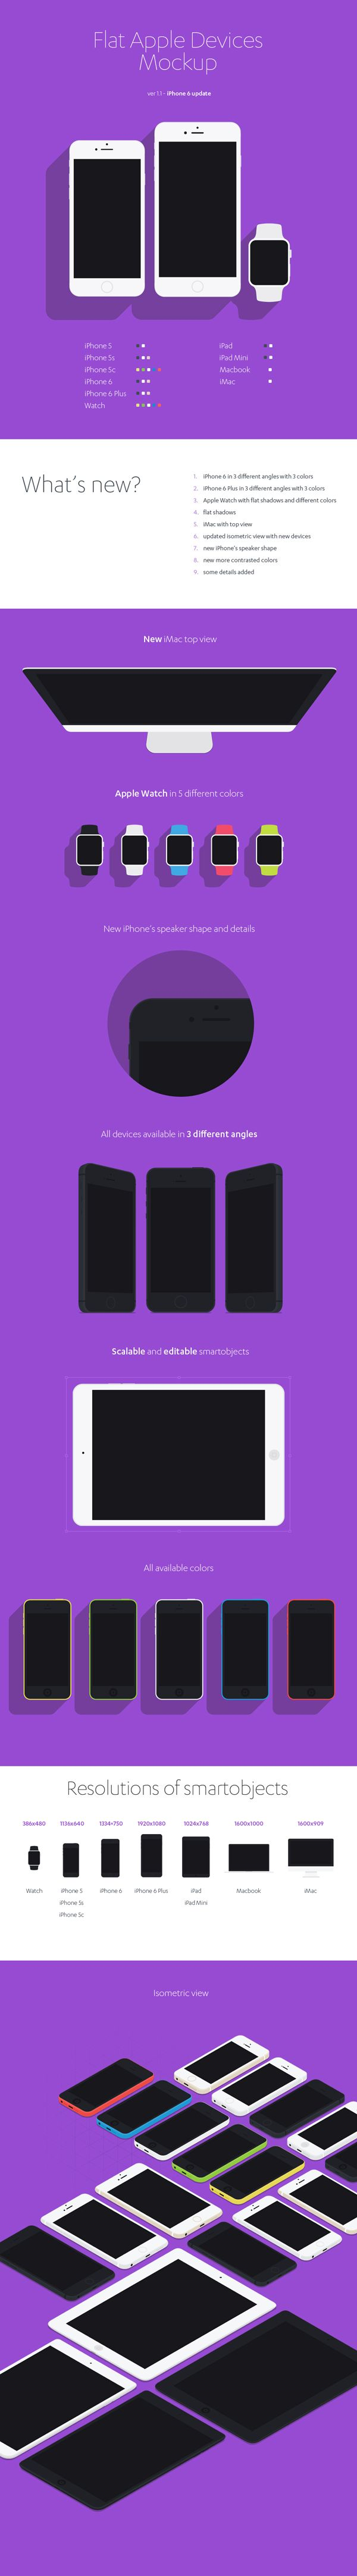 A huge collection of flat Apple devices mockups to showcase your responsive web designs. The PSD file includes...